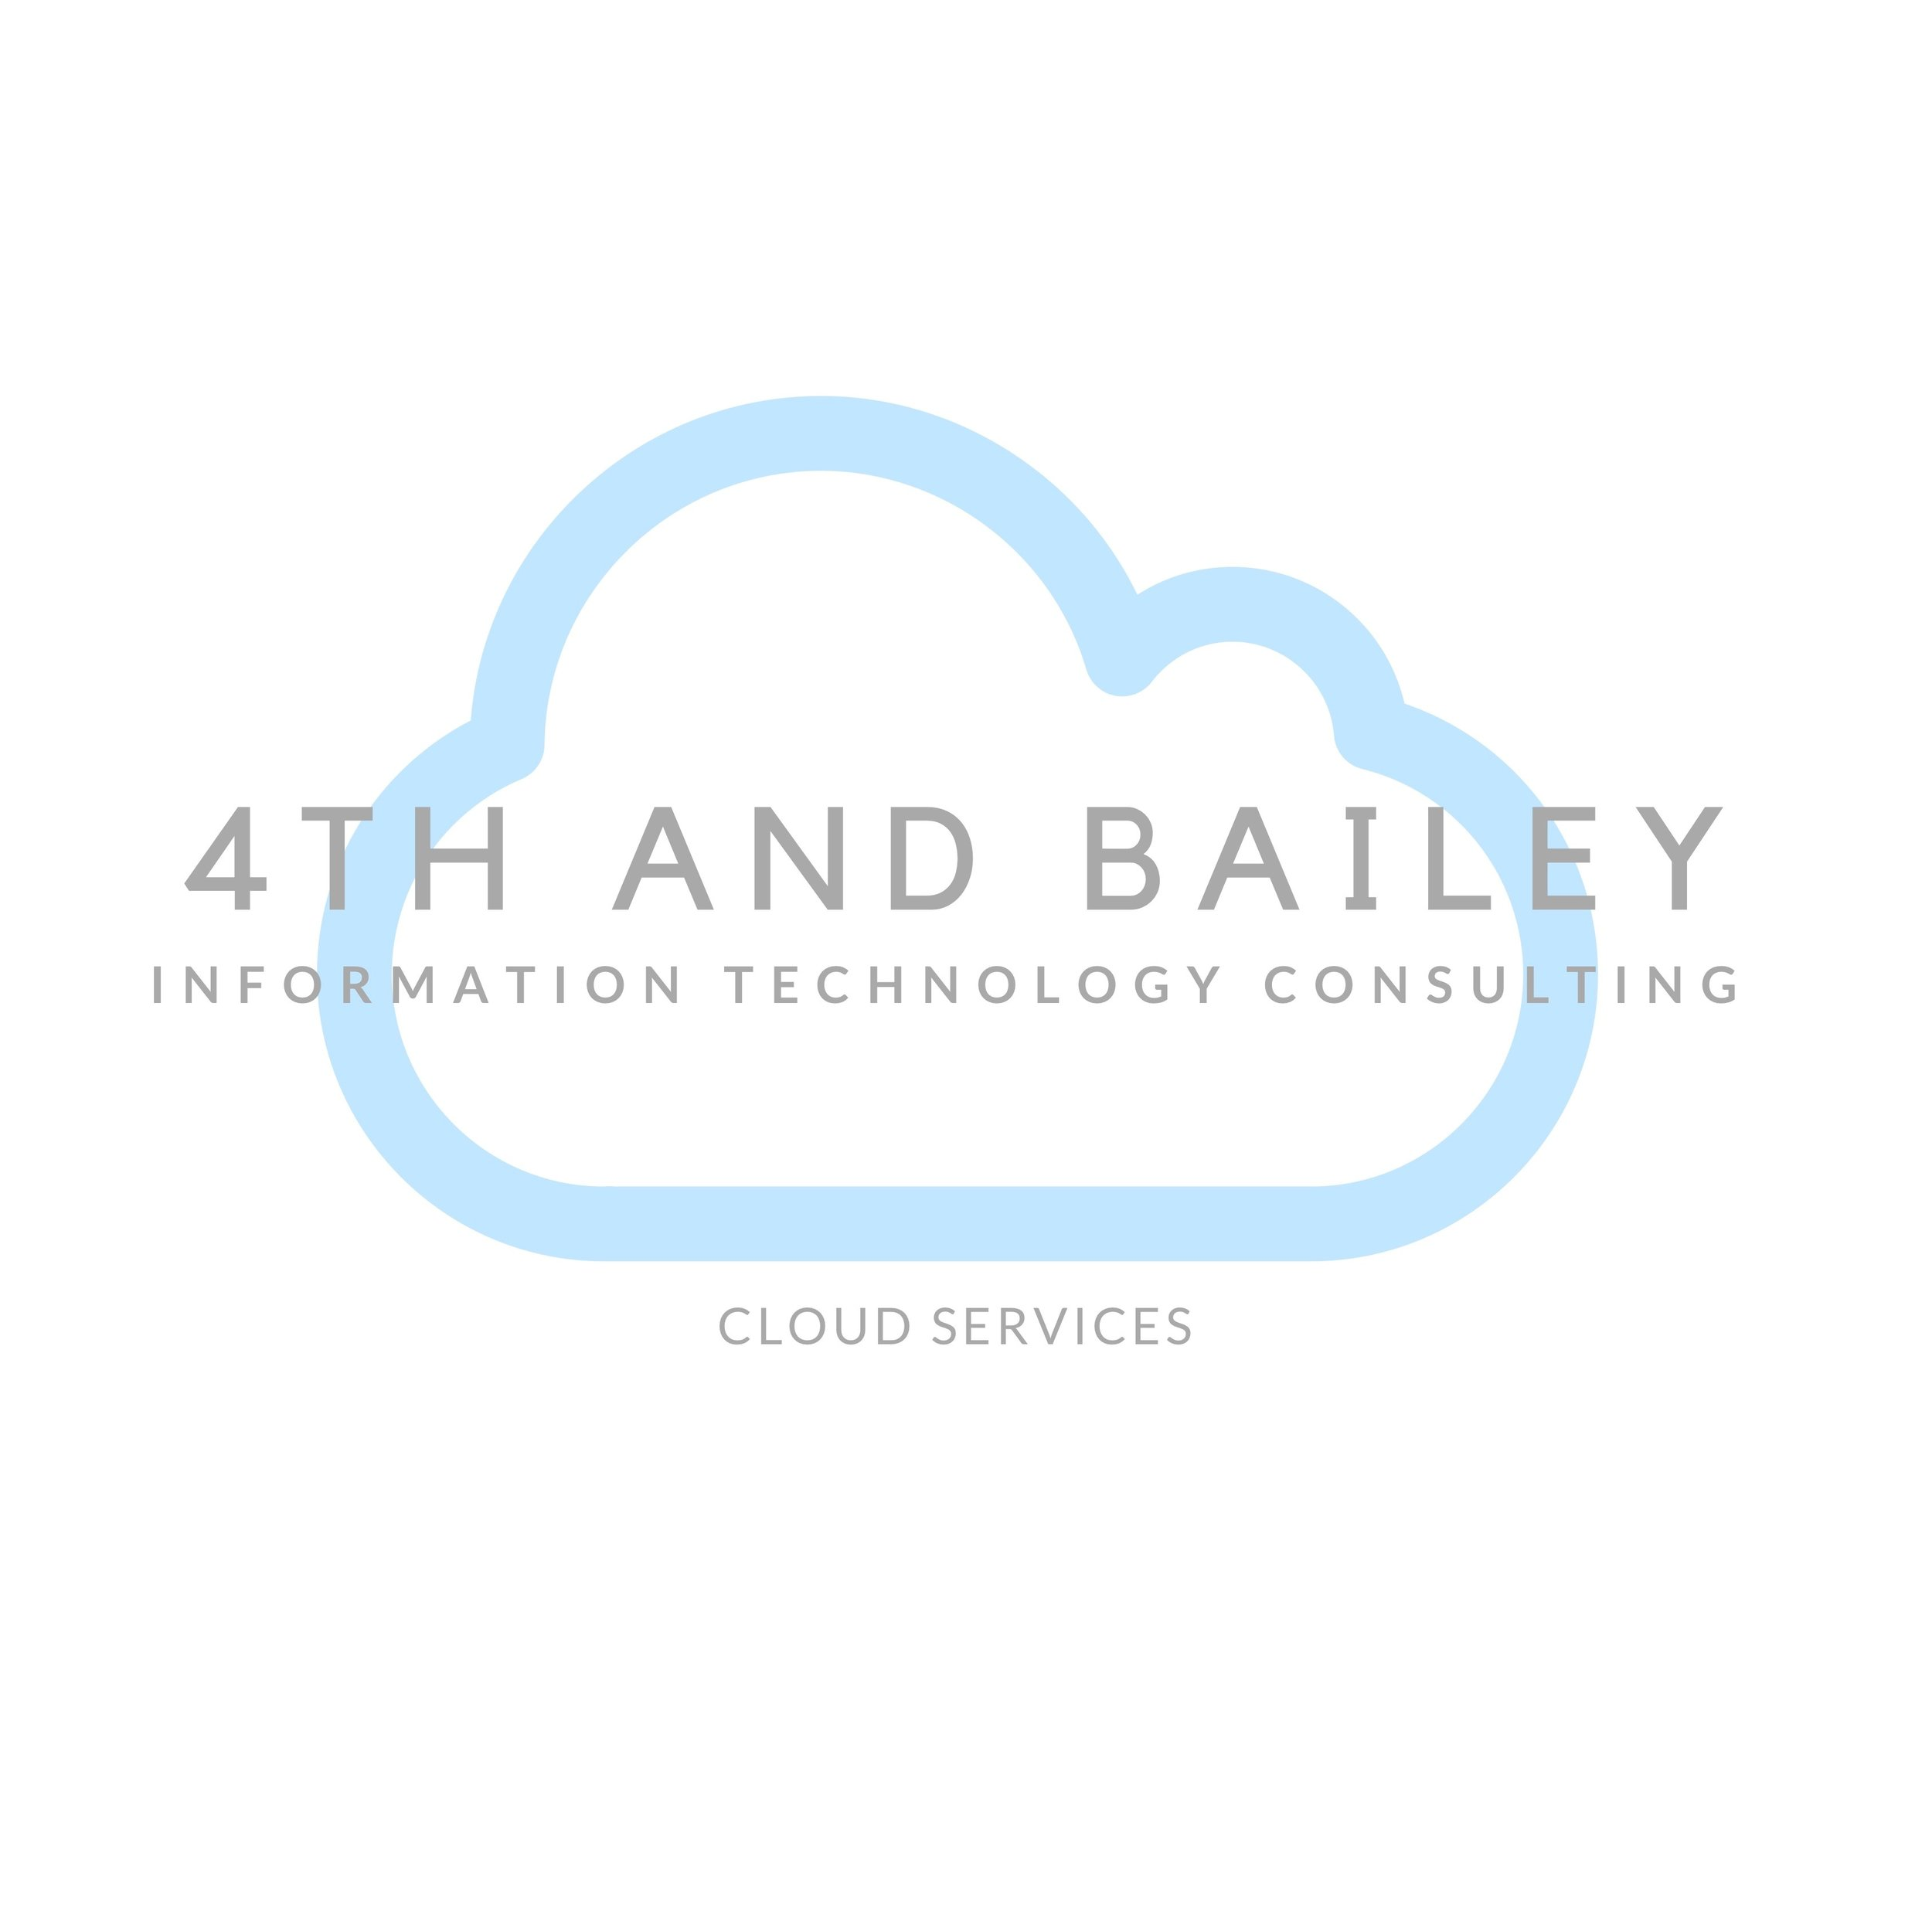 4th and Bailey Cloud Services